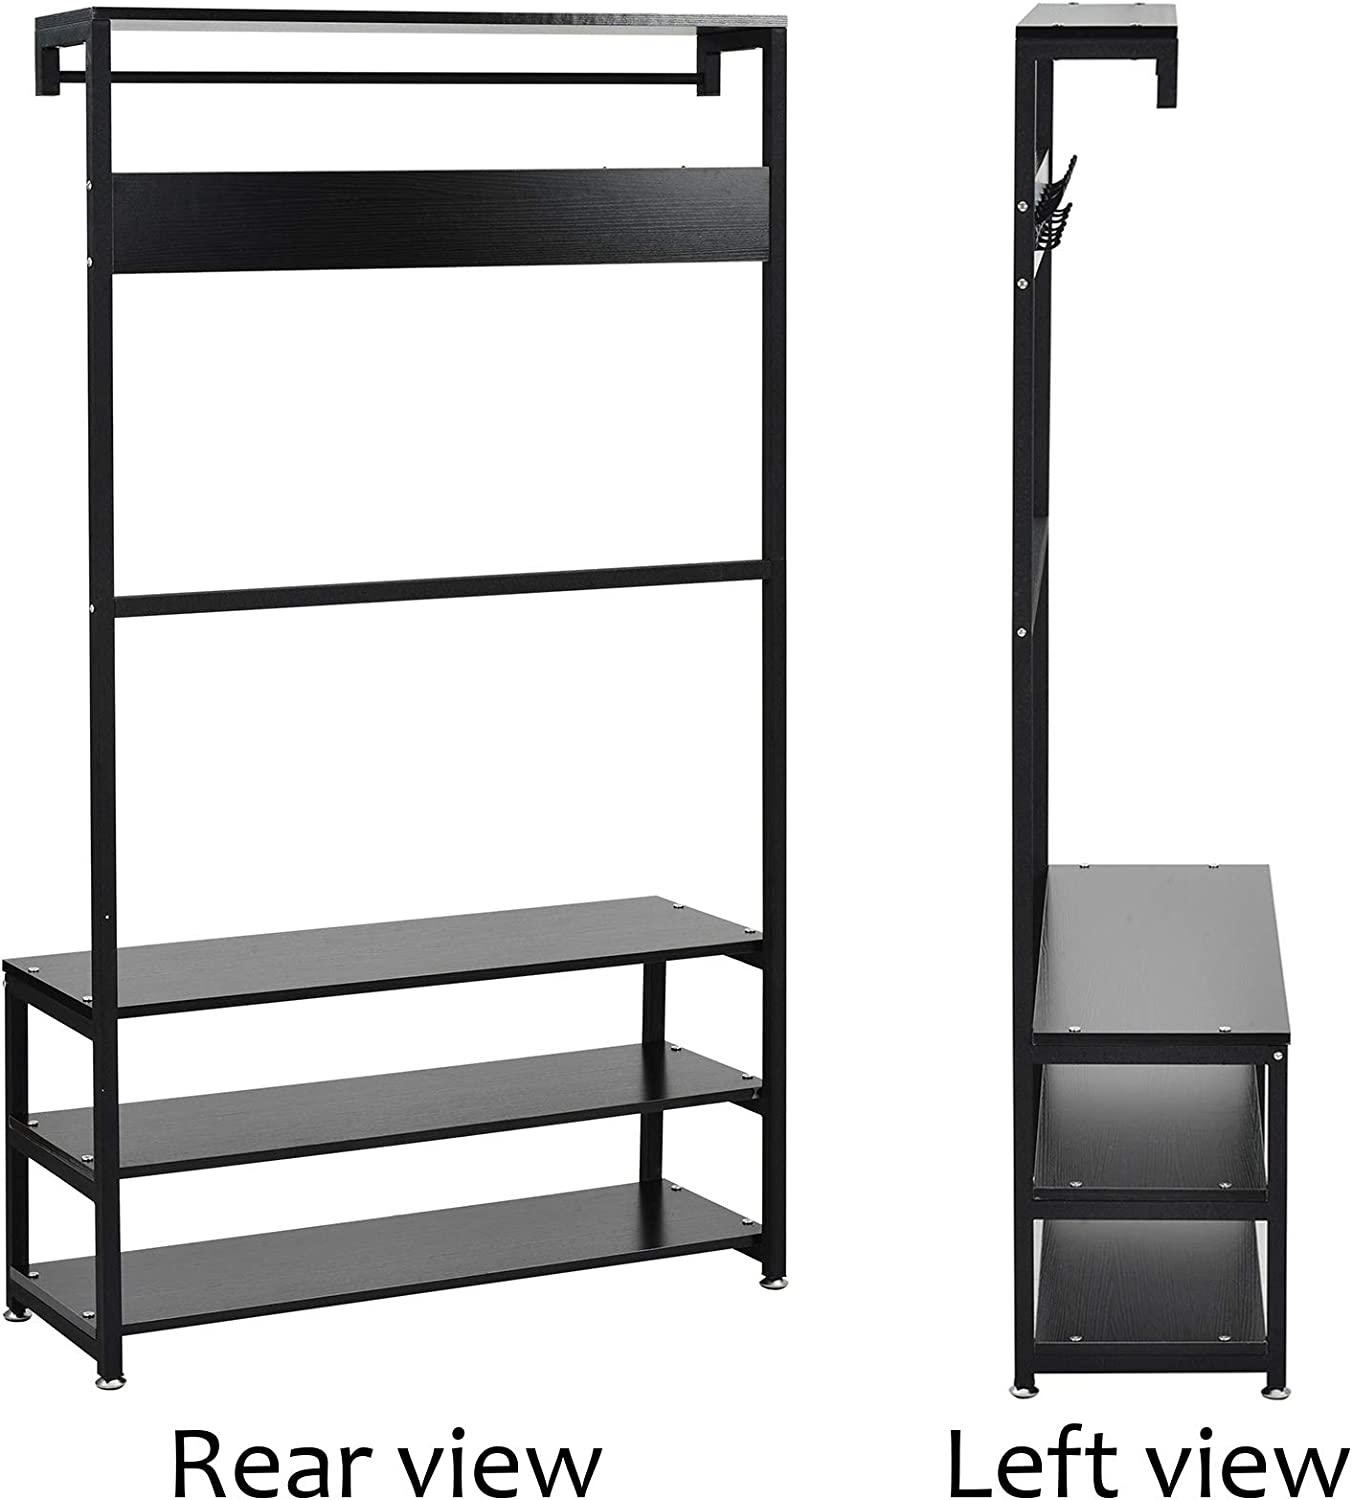 Hall Tree with Storage Bench 3 In 1 Design Easy Assembly OTFPLUS Industrial Accent Hallway Shelf Organizer with Metal Frame Entryway Coat Rack Shoe Bench